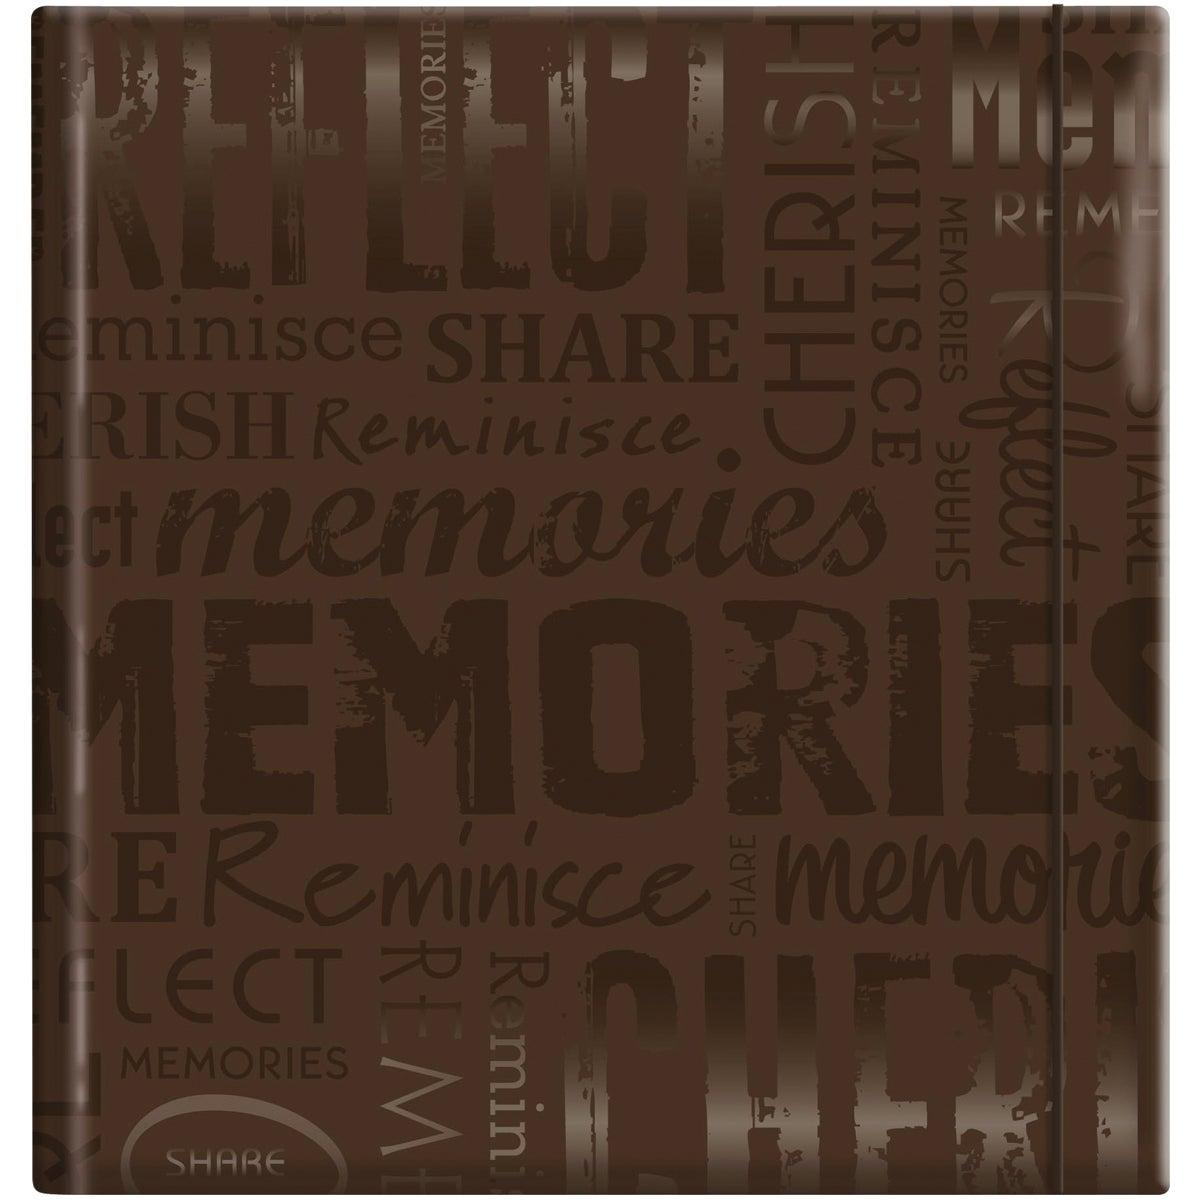 Embossed Gloss Expressions 'Memories' Brown Photo Album (Holds 200 photos)